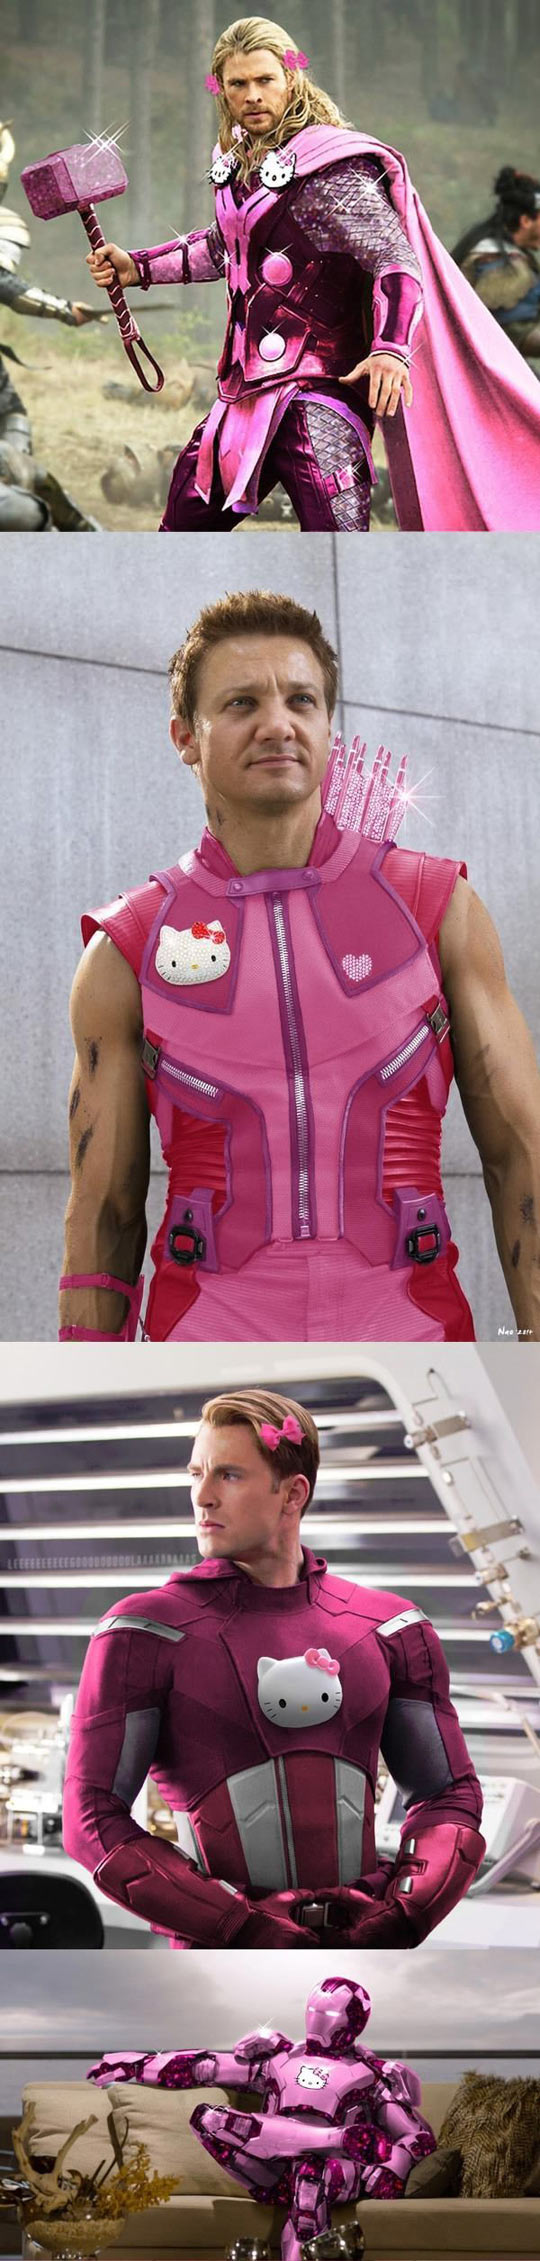 funny-hero-Hello-Kitty-costume